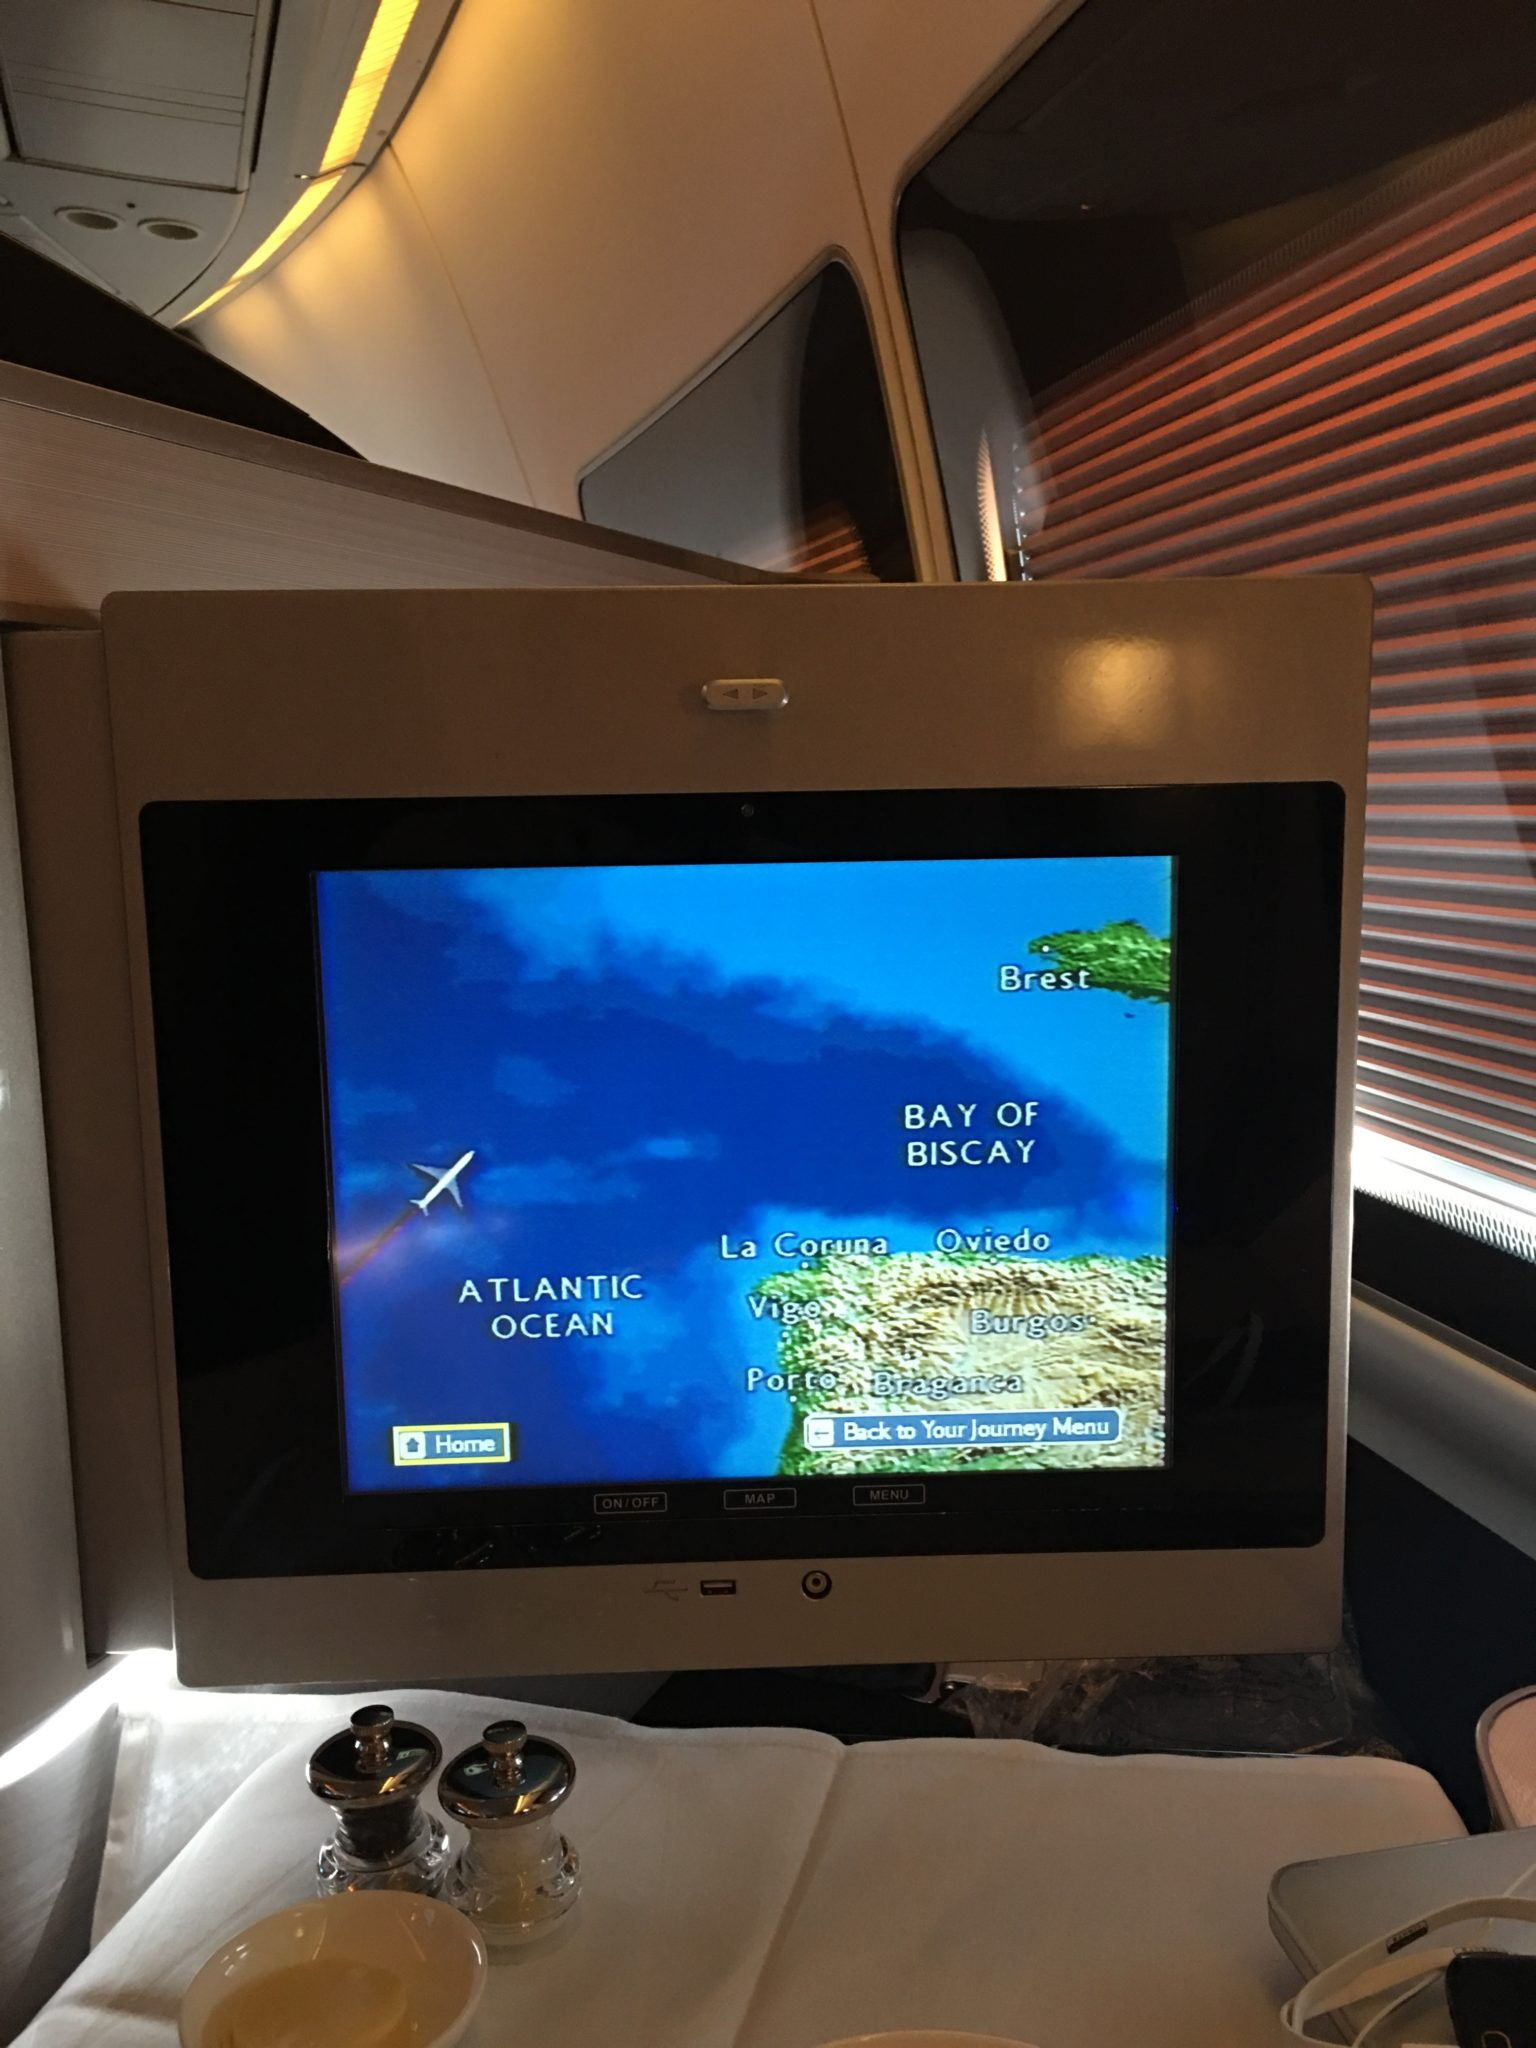 The elderly BA entertainment system on these unrefurbished 747s isn't up to snuff any more. Image: Callum Skinner